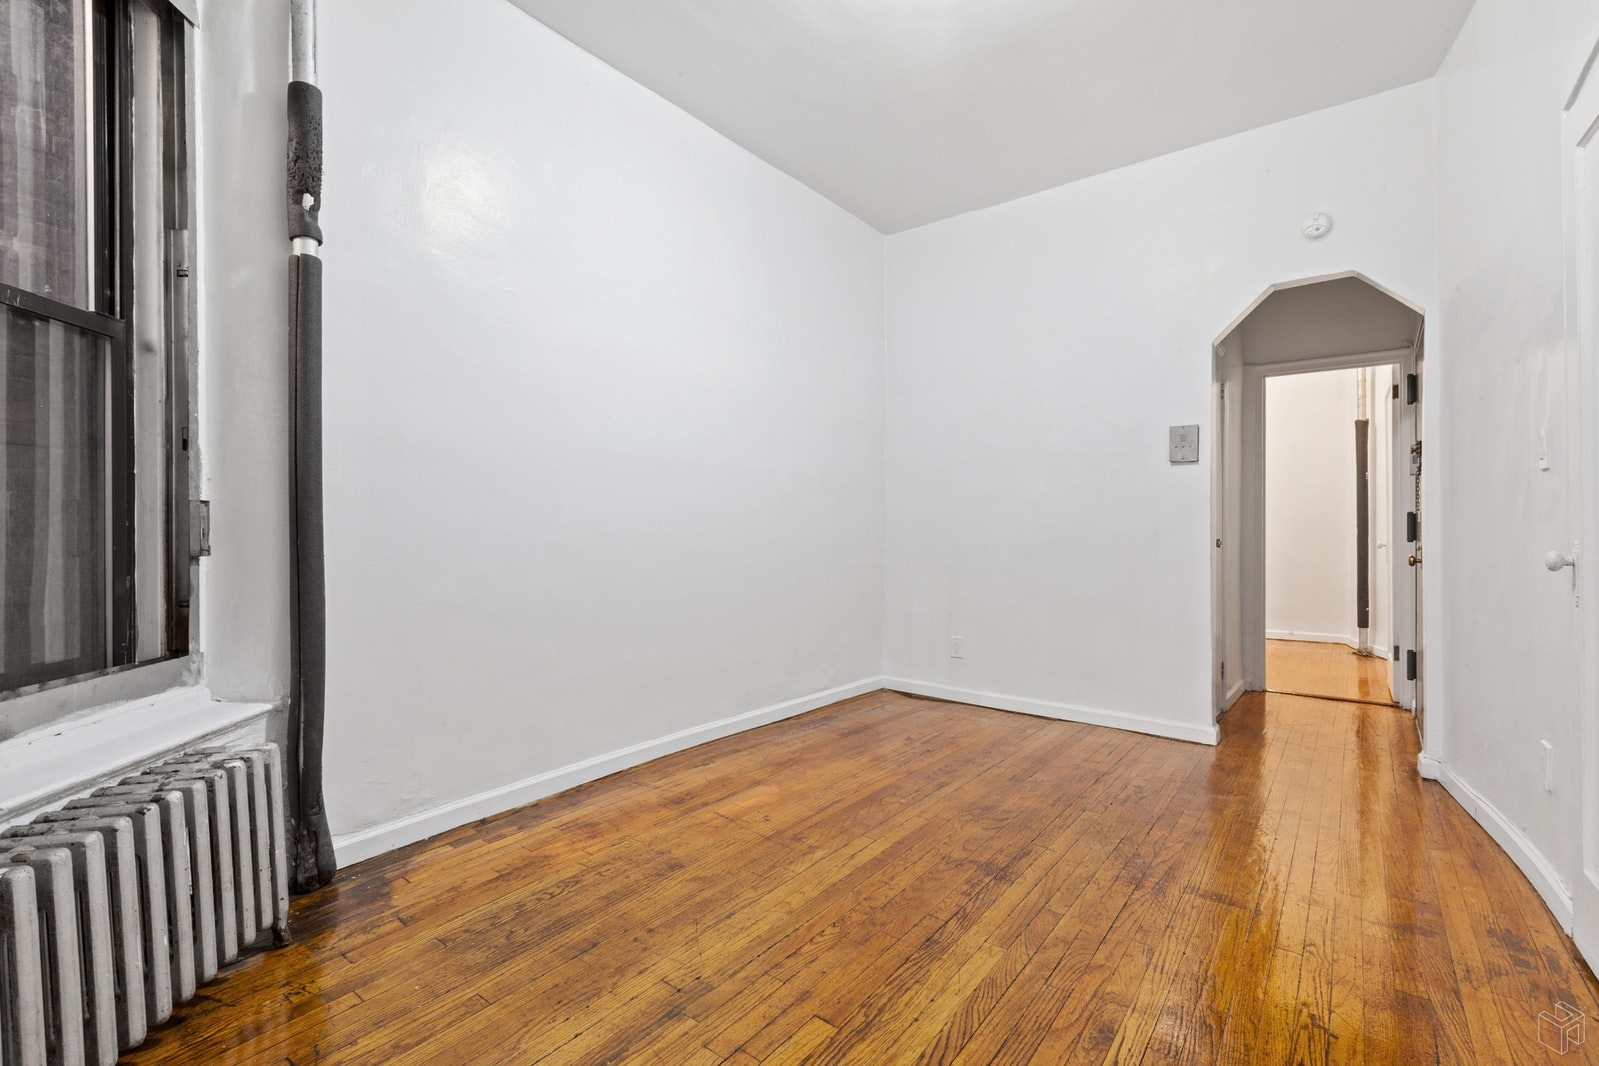 359 West 126th Street 1b, Upper Manhattan, NYC, 10027, Price Not Disclosed, Rented Property, Halstead Real Estate, Photo 2